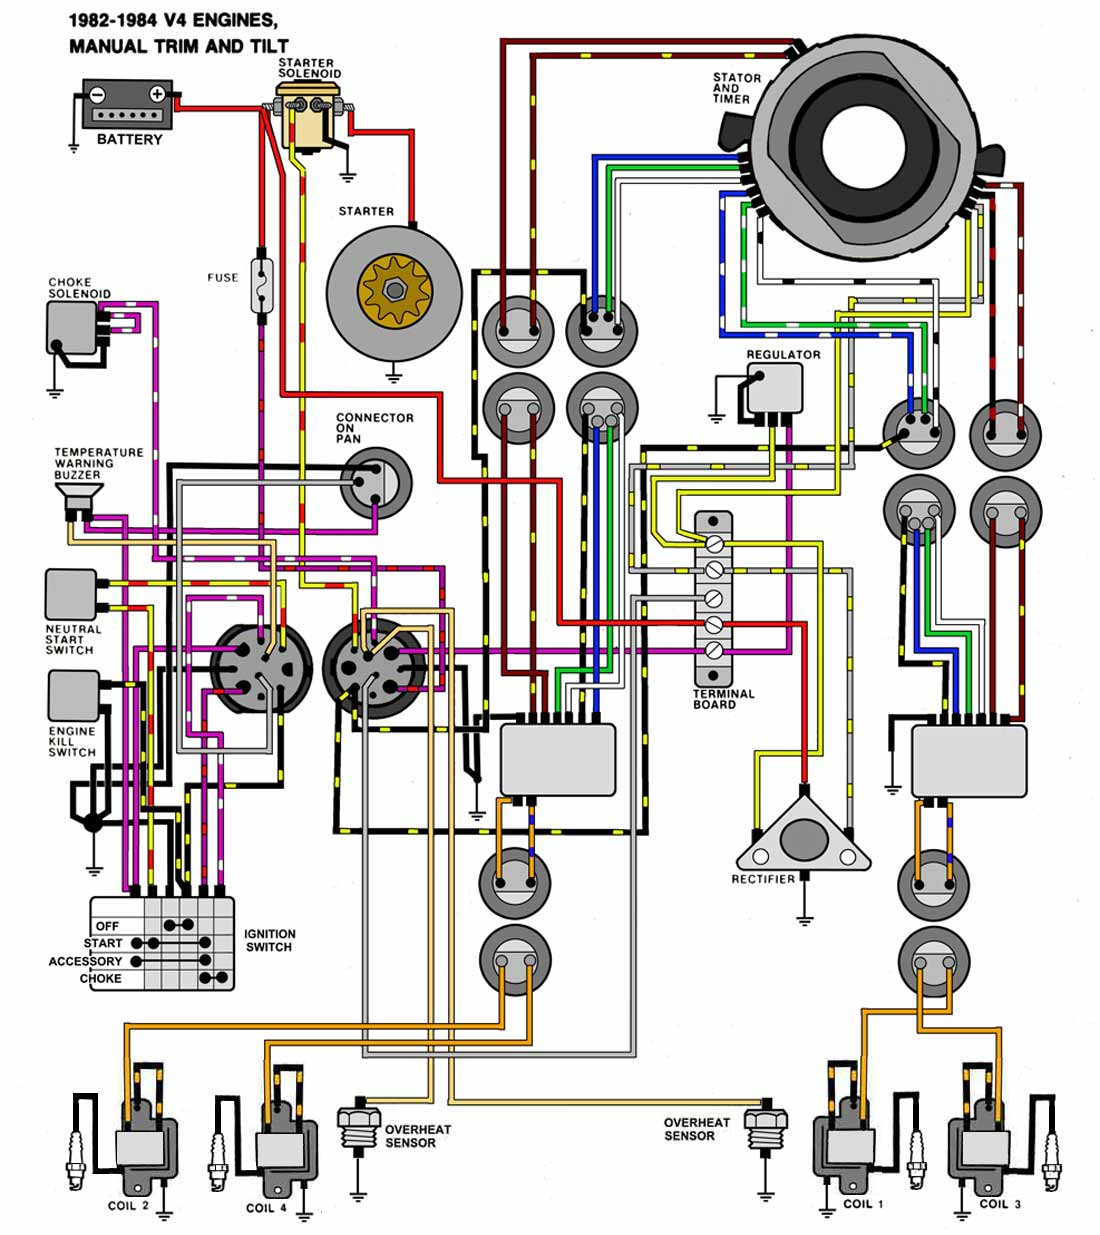 82_84_V4_NOTNT mastertech marine evinrude johnson outboard wiring diagrams 1981 evinrude 35 hp wiring diagram at virtualis.co